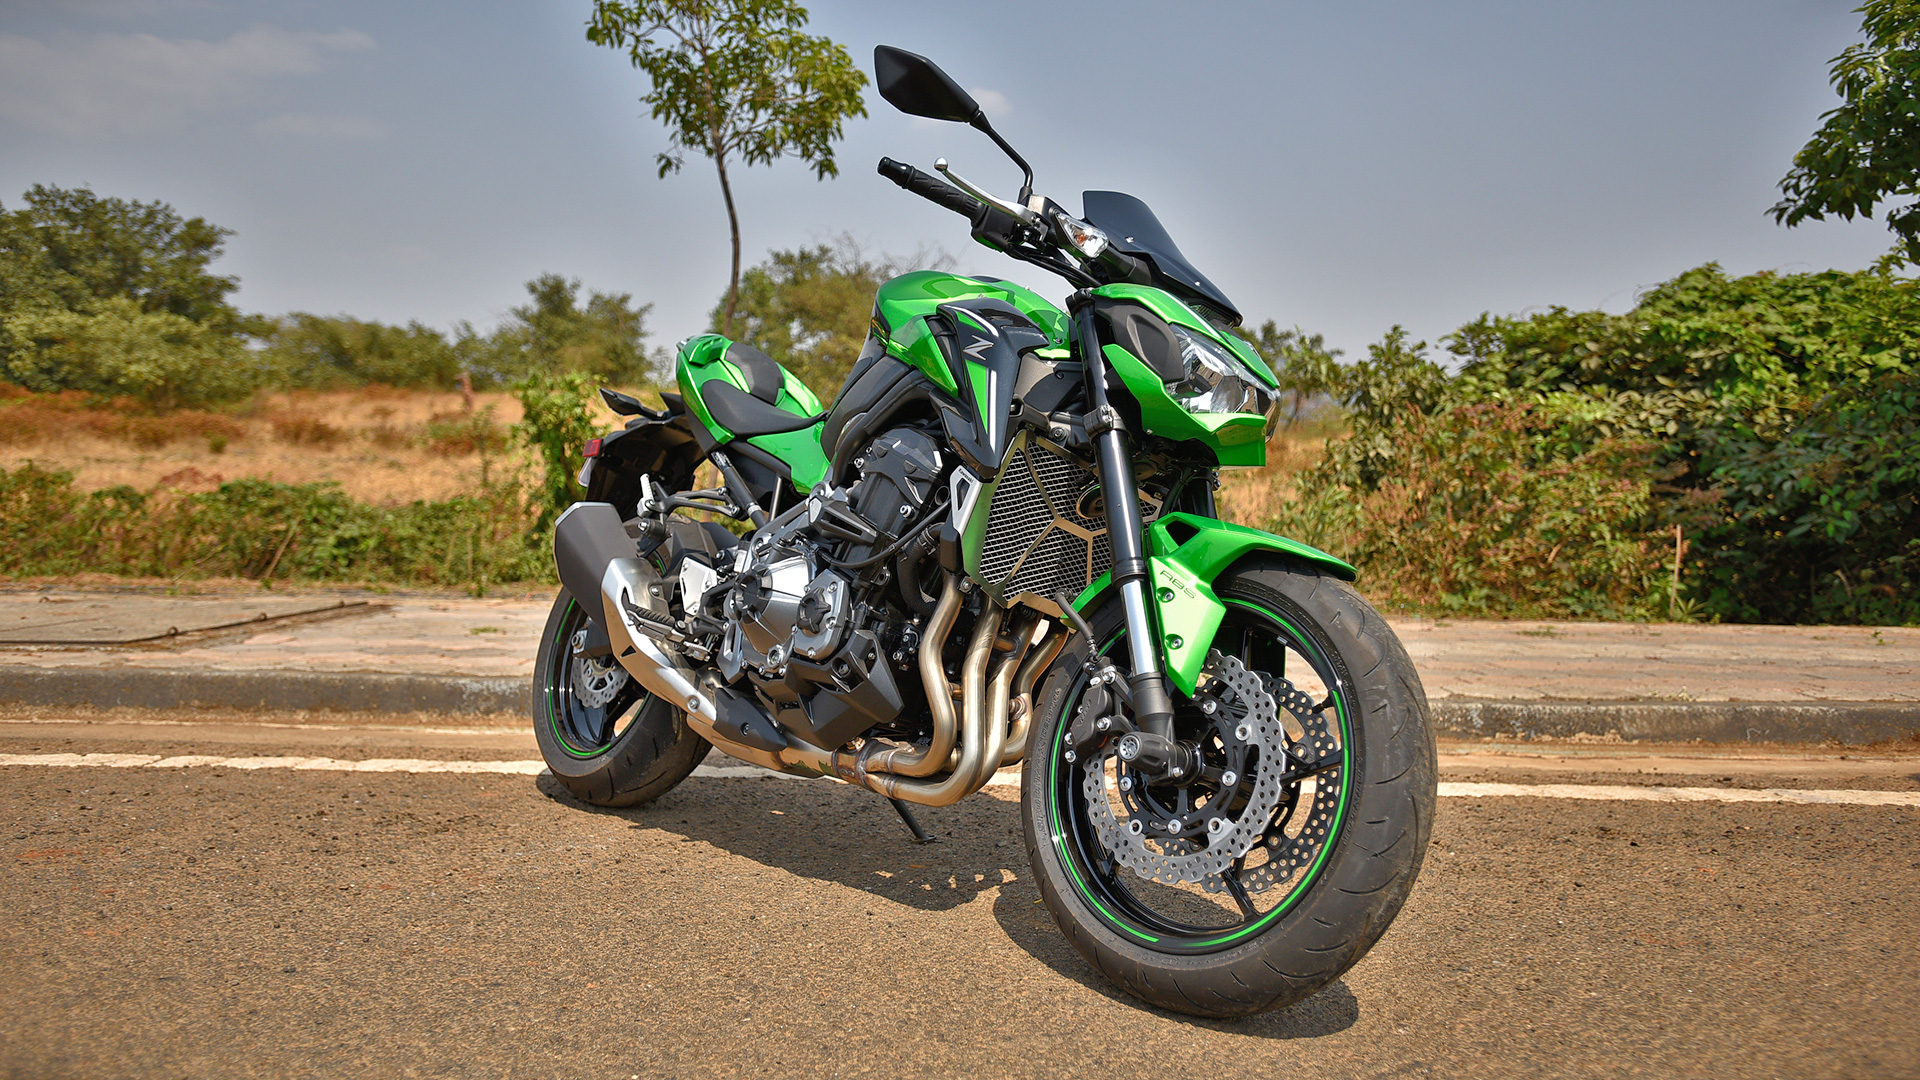 kawasaki z900 2017 std price mileage reviews specification gallery overdrive. Black Bedroom Furniture Sets. Home Design Ideas